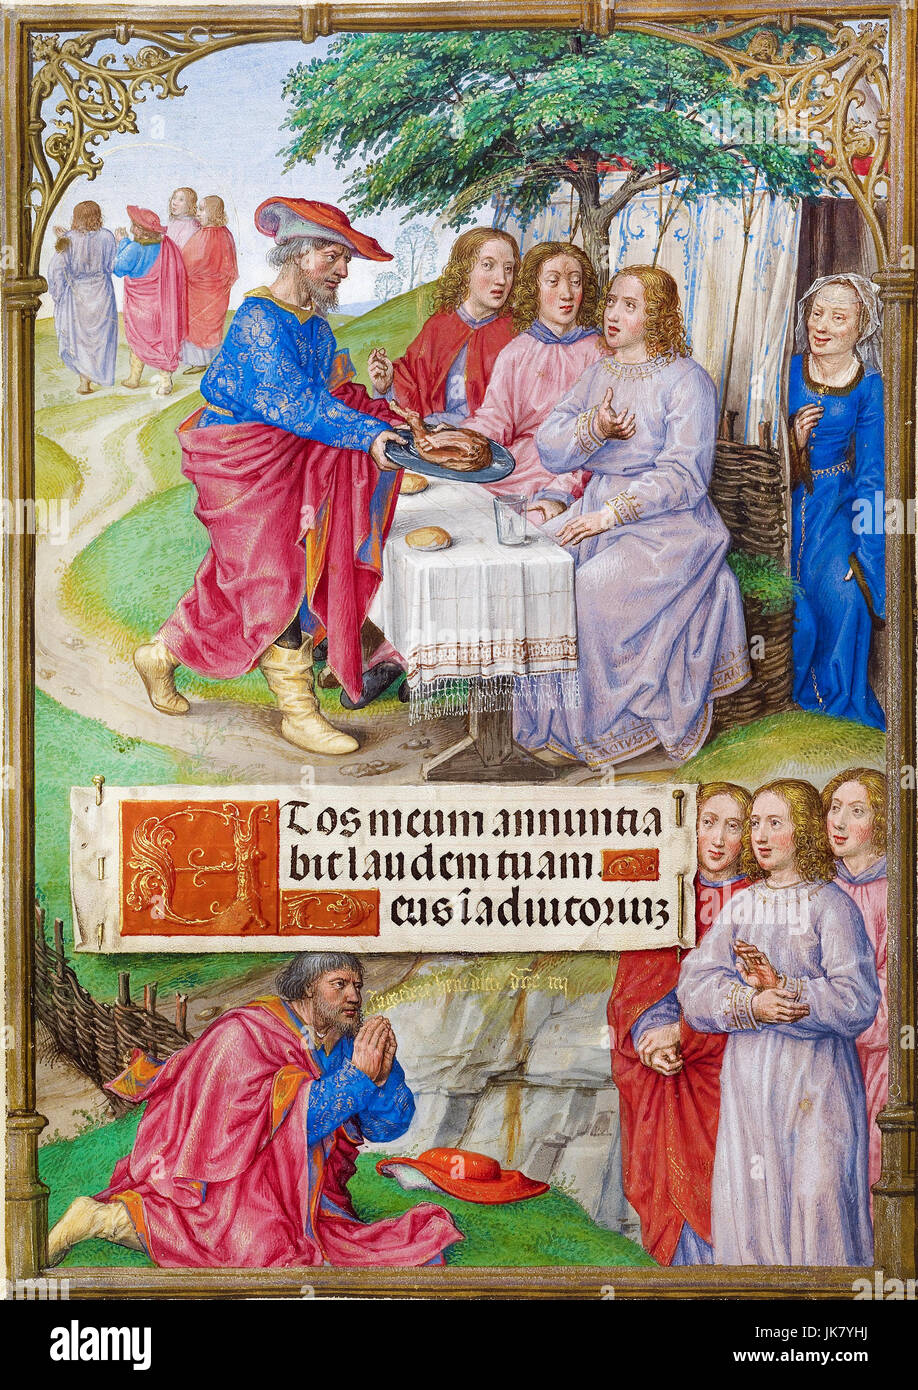 Master of James IV of Scotland, Abraham and the Three Angels 1510-1520 Tempera colors, gold, and ink on parchment. - Stock Image